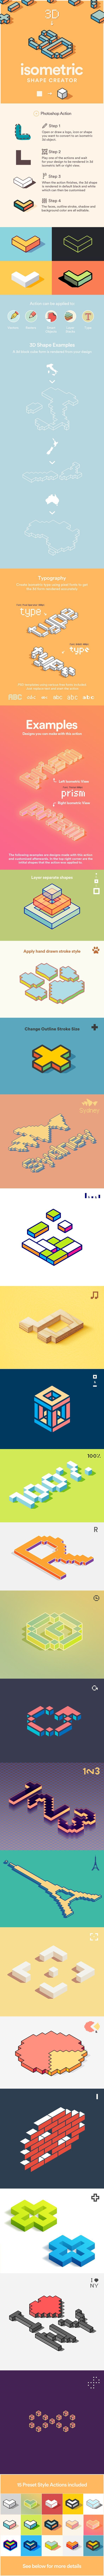 3D Isometric Shape Creator  #3d shape #action #creator • Available here →                                                                                                                                                                                 More